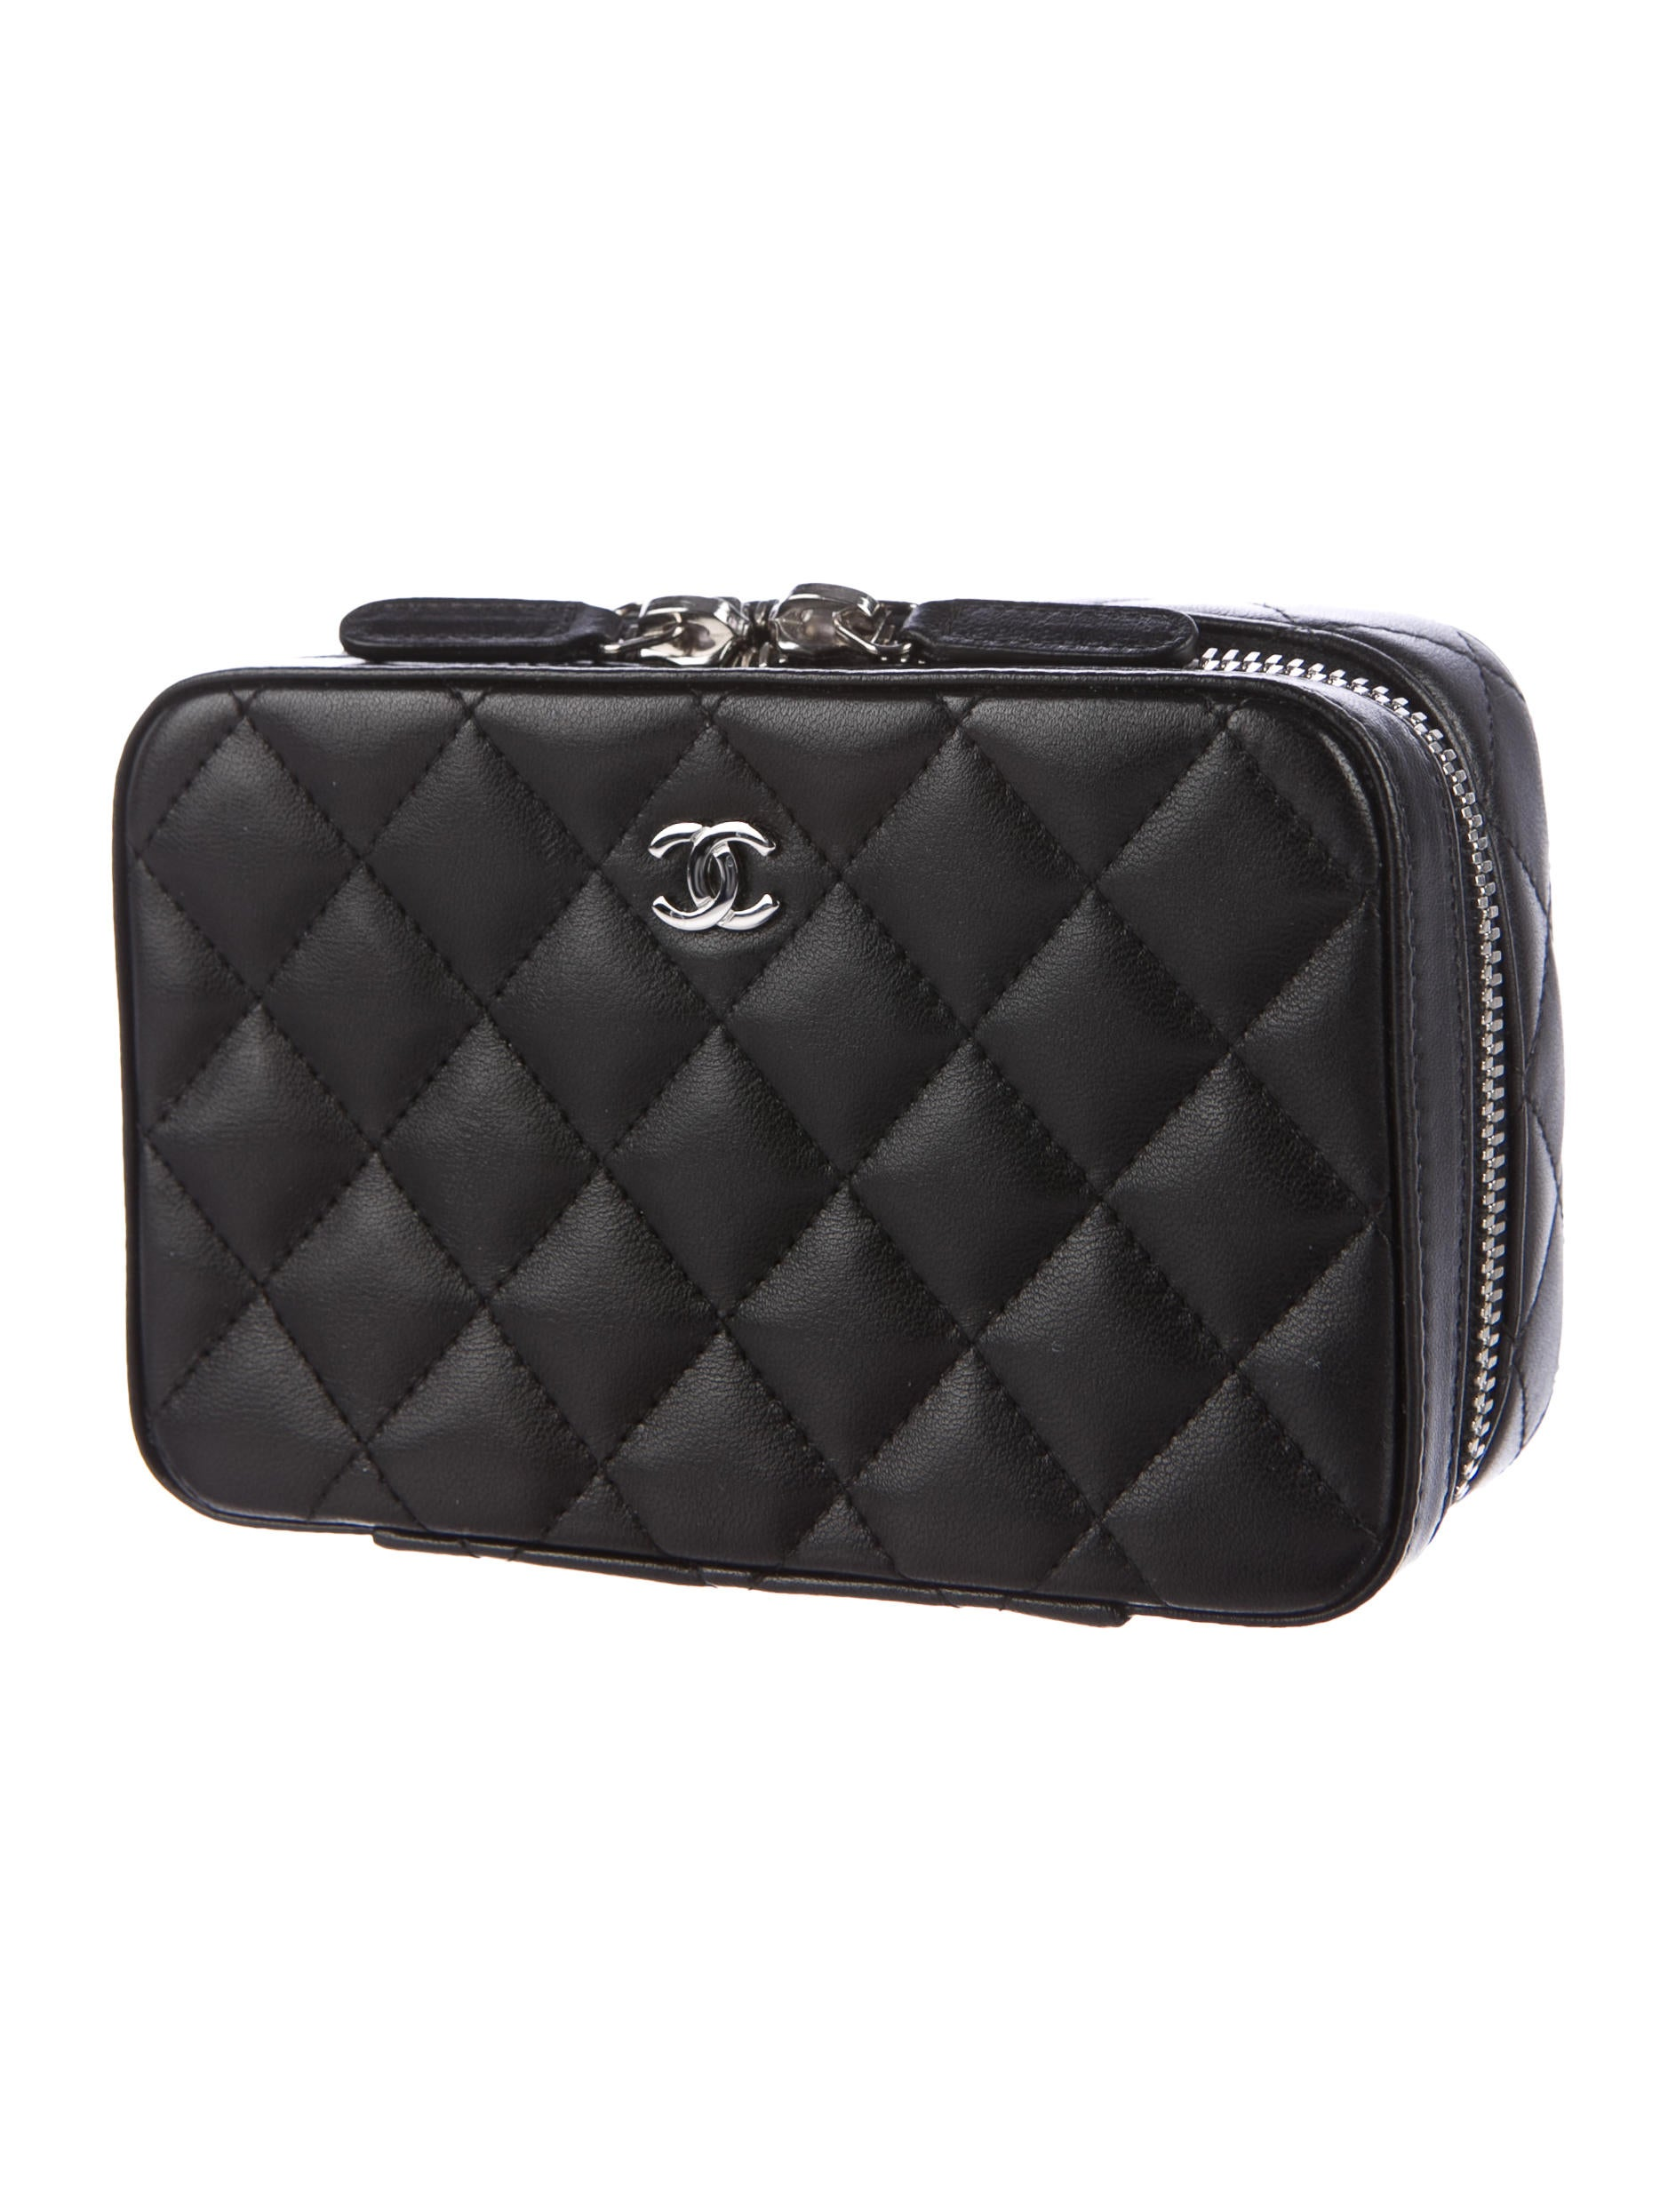 Chanel Quilted Lambskin Jewelry Case - Accessories ...